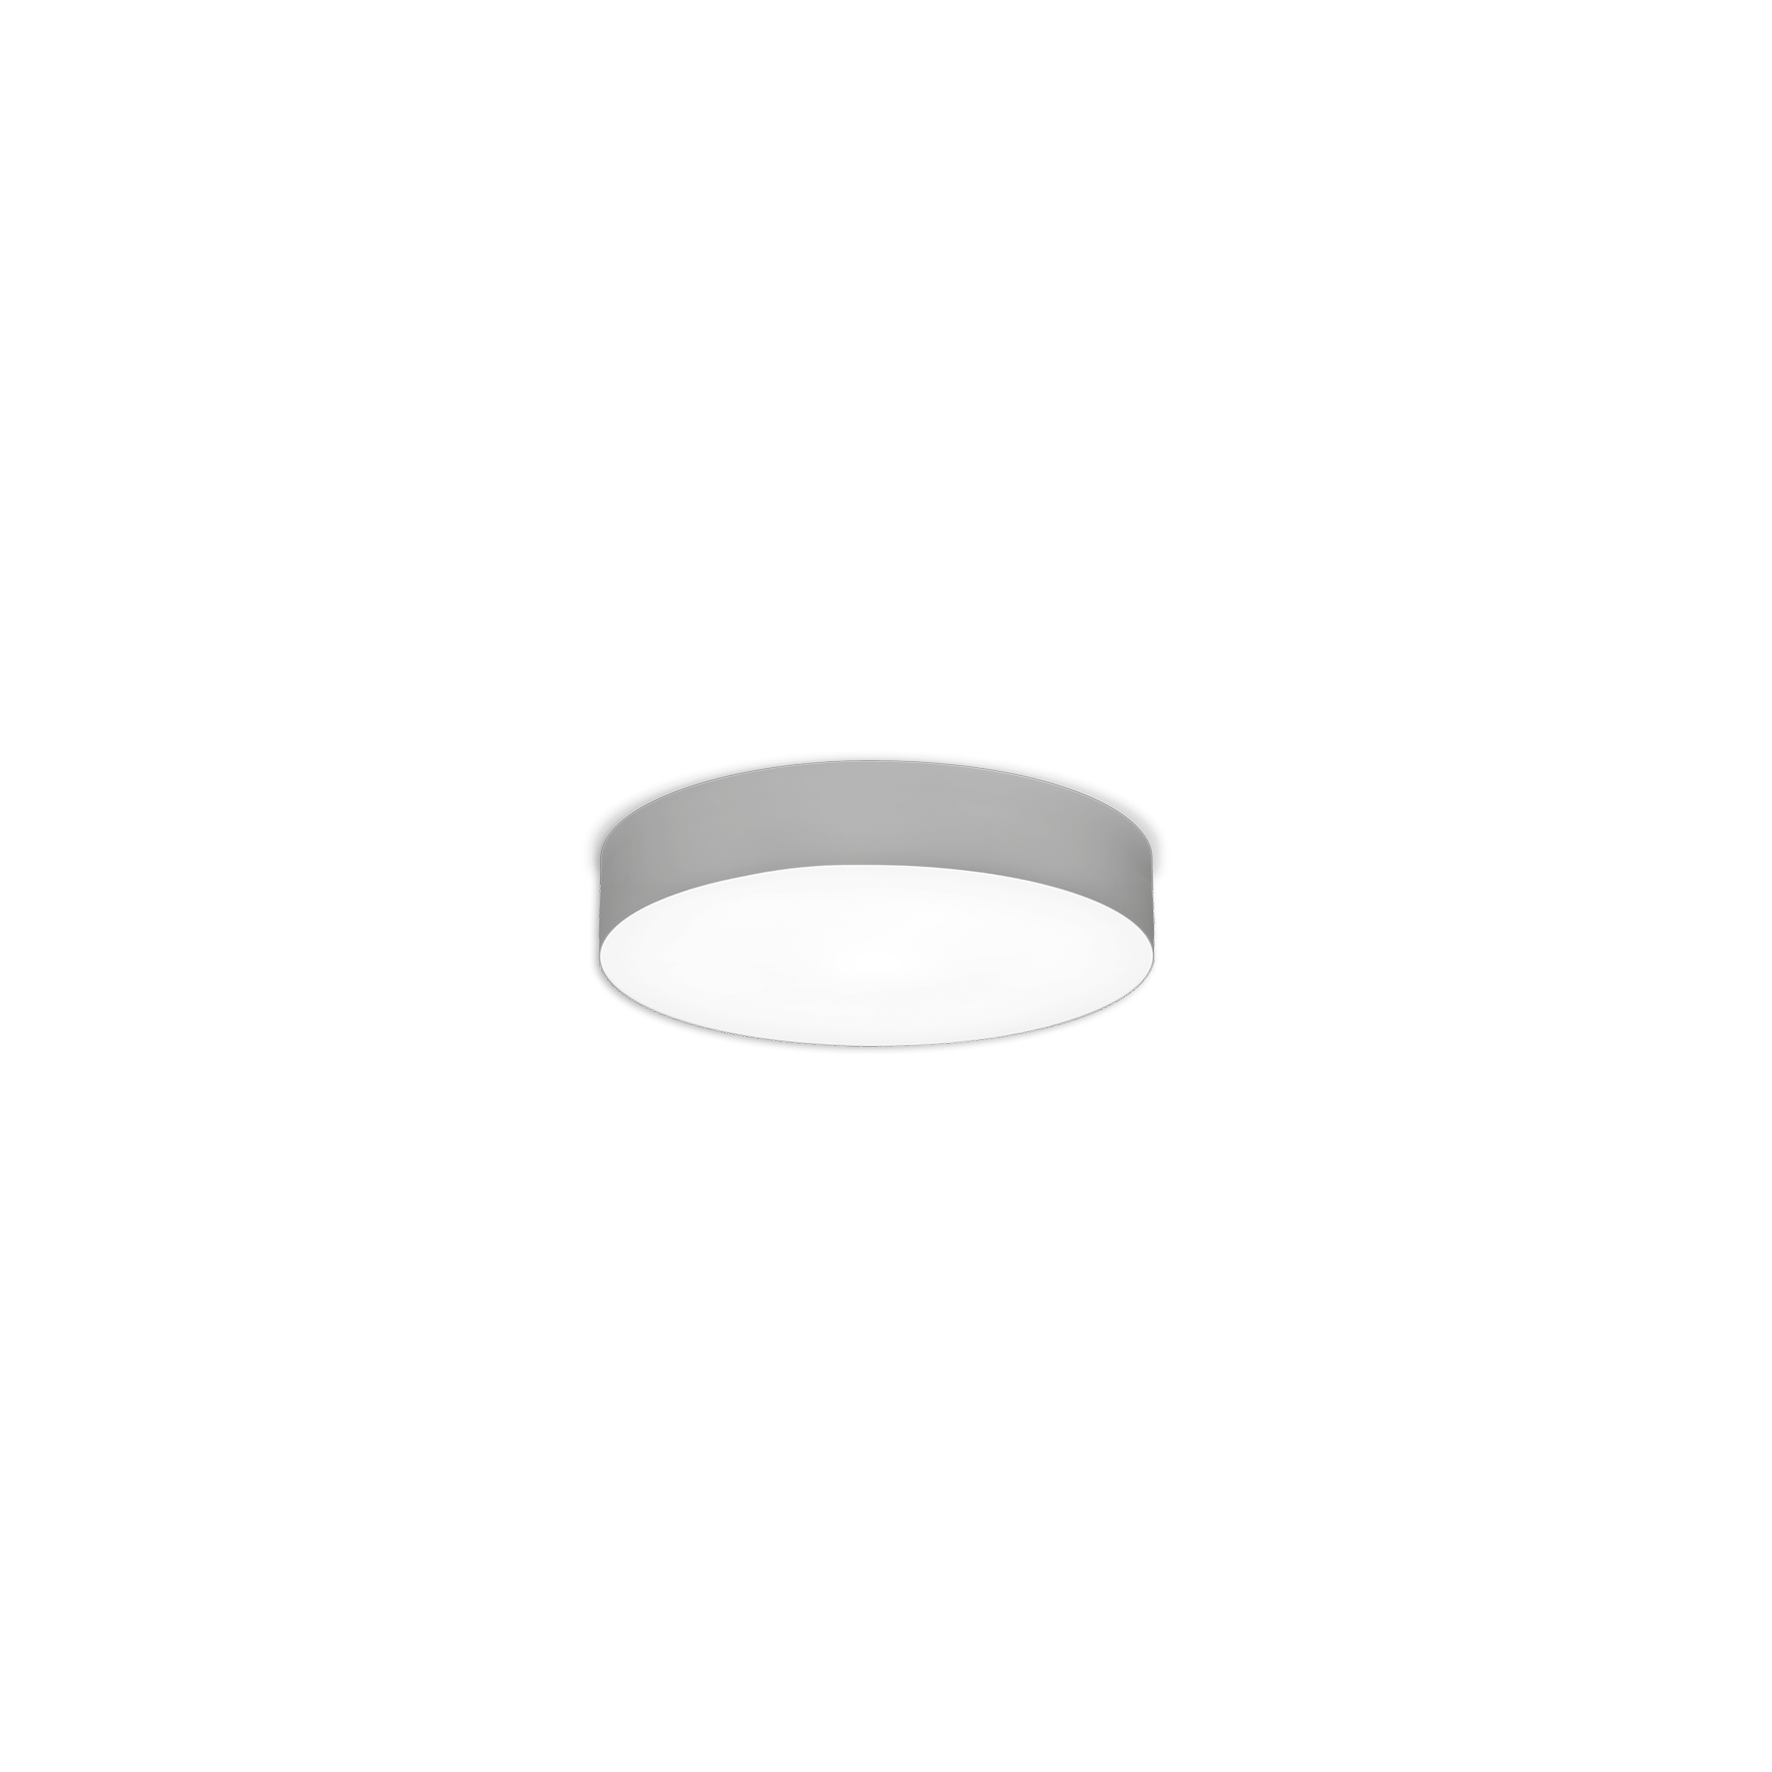 Sono 2 12 deep super slim fixture housing made of round die cast sono 2 12 deep super slim fixture housing made of round die cast aluminum powder coated gray white or black surface mounted or suspended arubaitofo Gallery